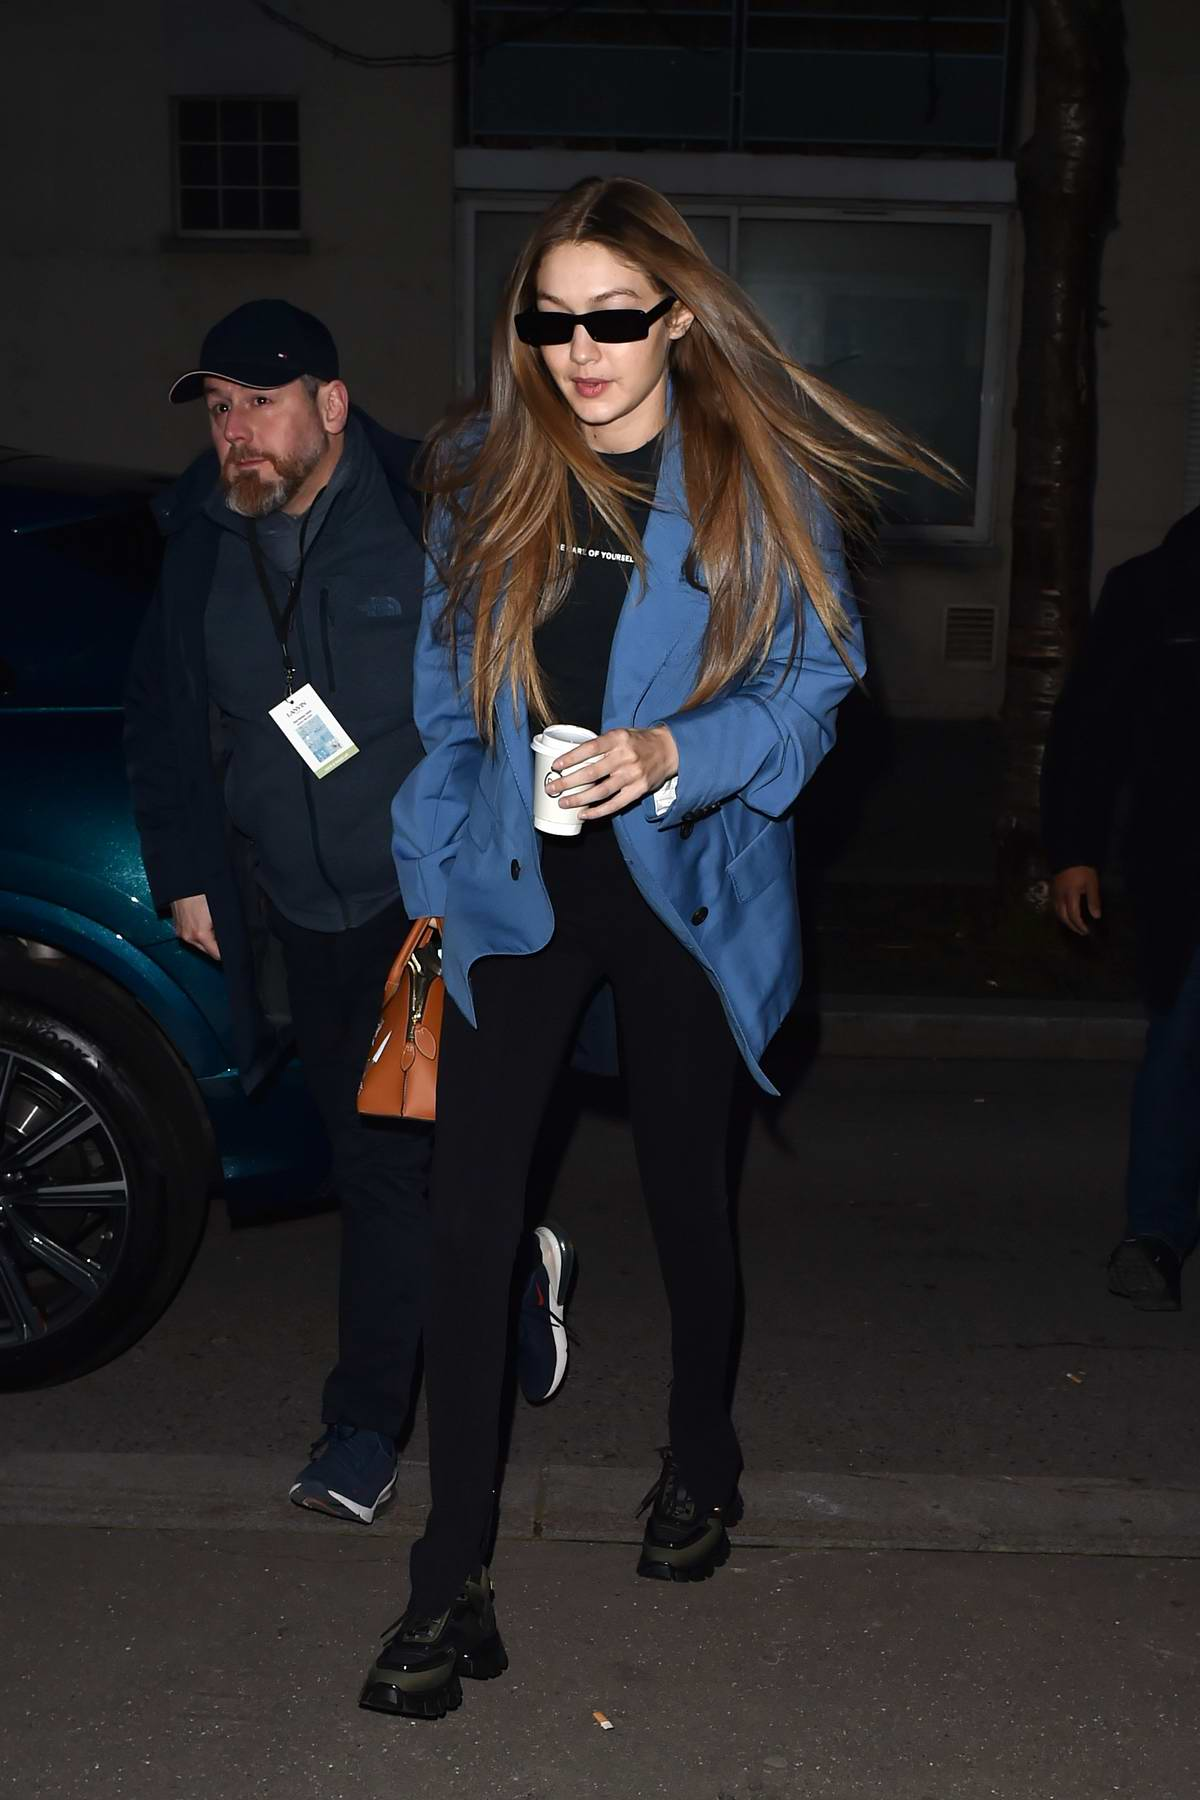 Gigi Hadid looks great in a blue blazer while out during Fashion Week 2020 in Paris, France